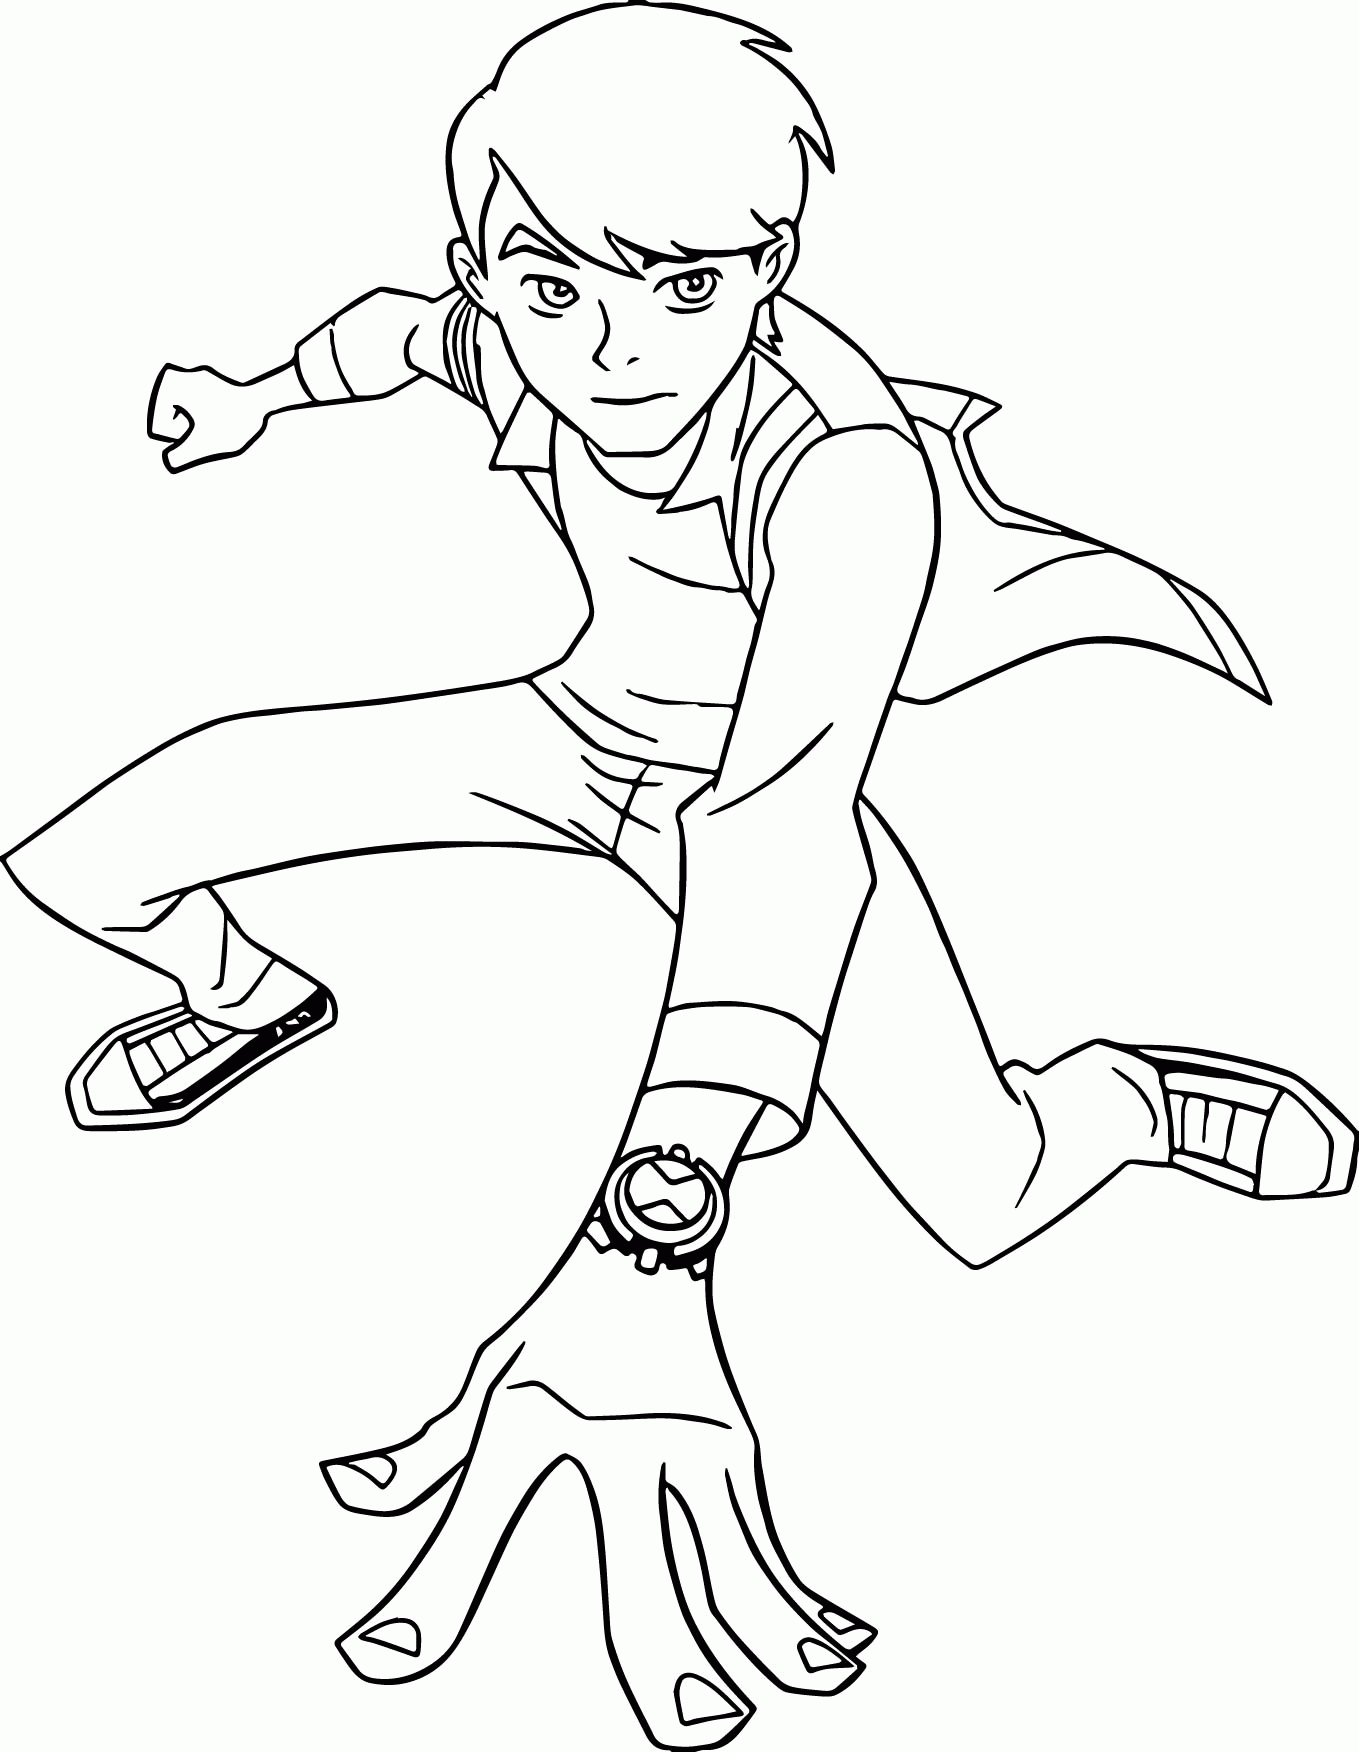 27 Ben Ten Coloring Pages Selection | FREE COLORING PAGES - Part 2